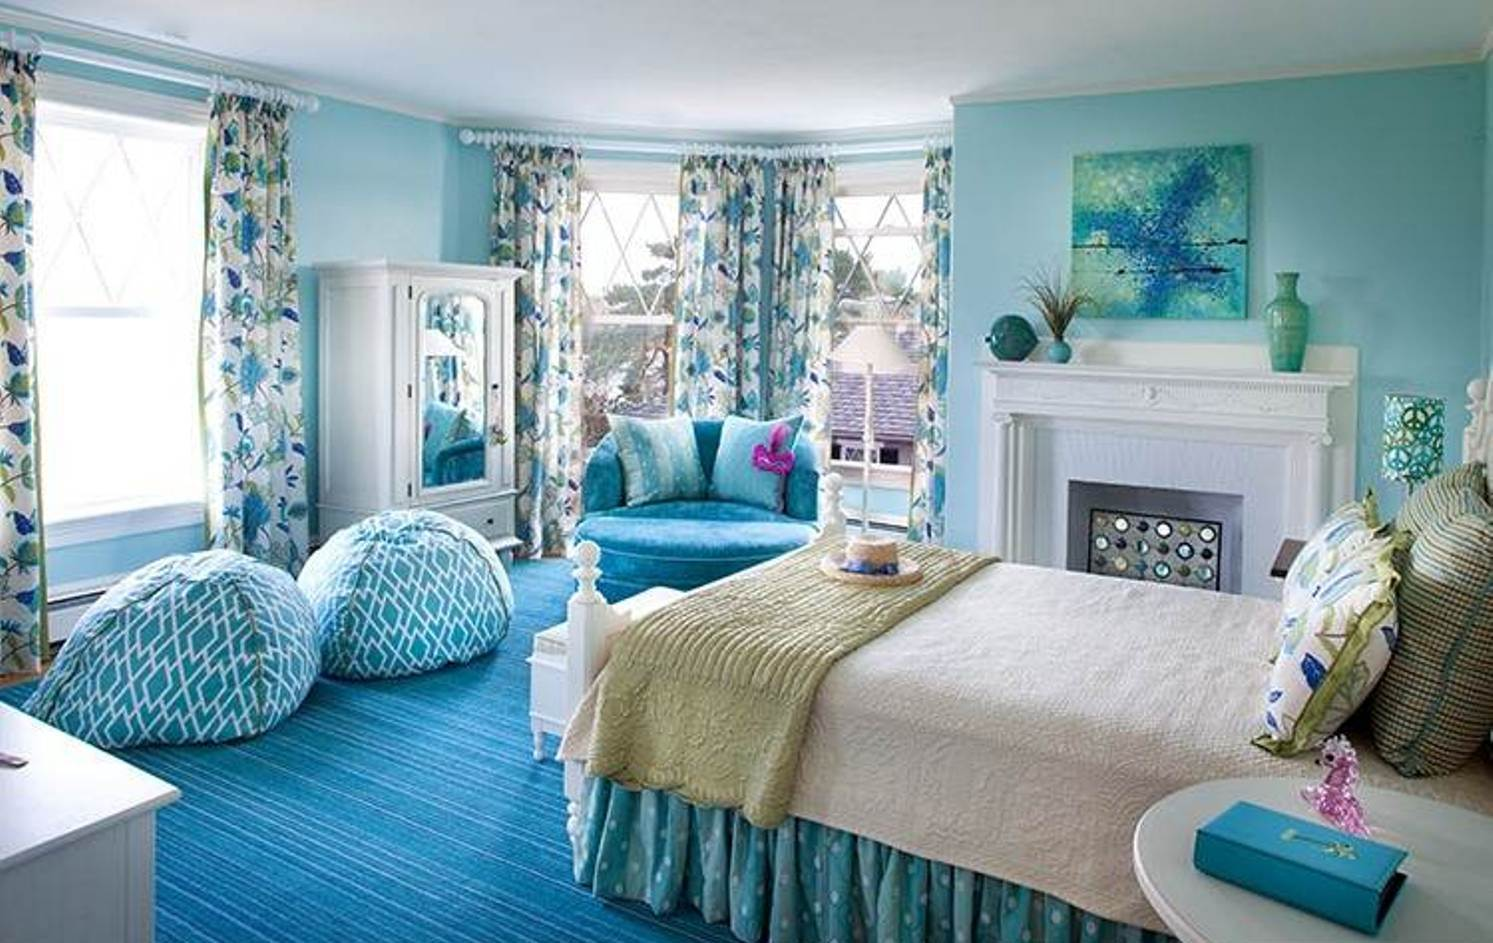 Best Bedroom Design Ideas For Girls This Month